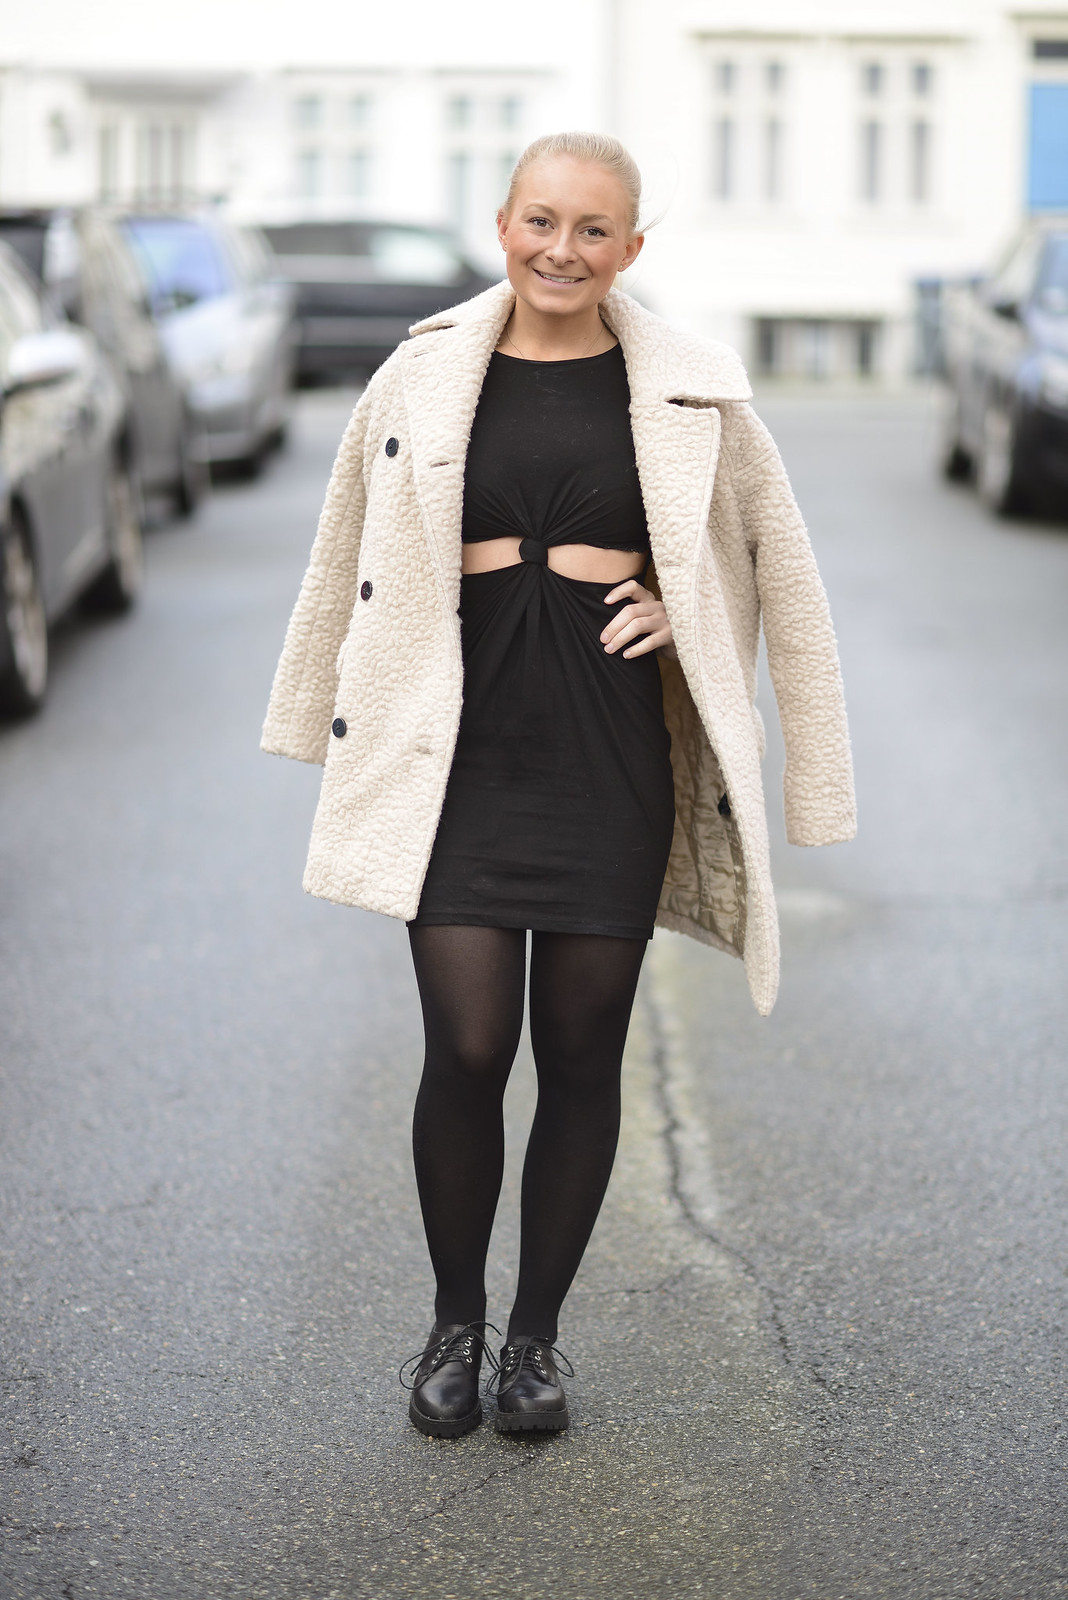 25apr.2015_Outfit_4136a